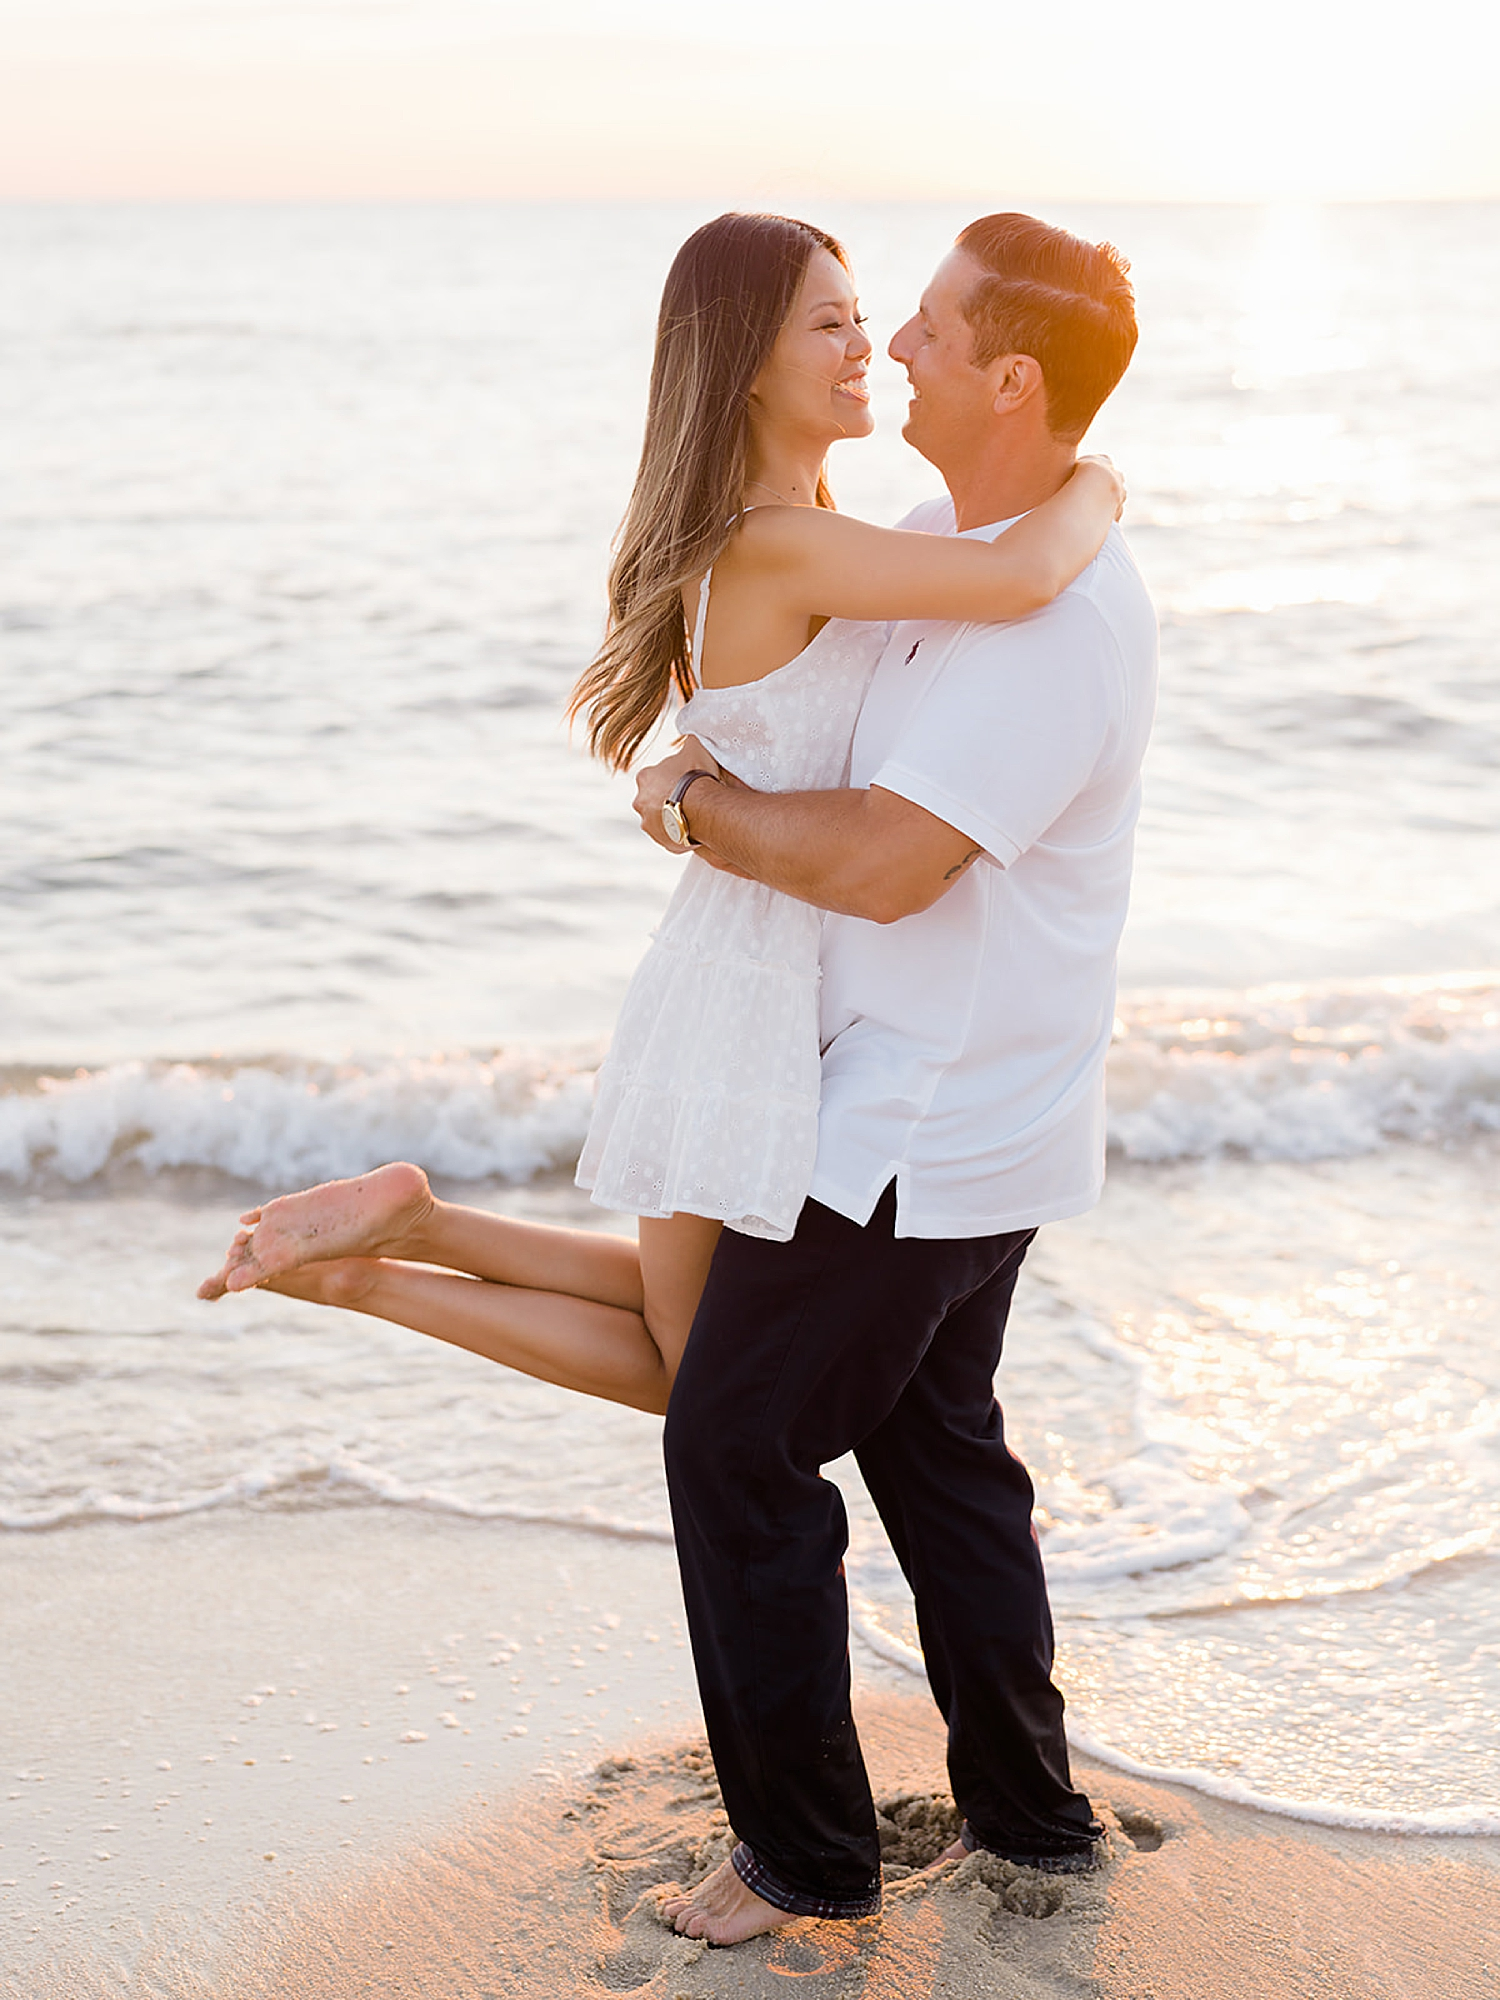 Willow Creek Winery New Jersey Engagement Photography by Magdalena Studios 0027